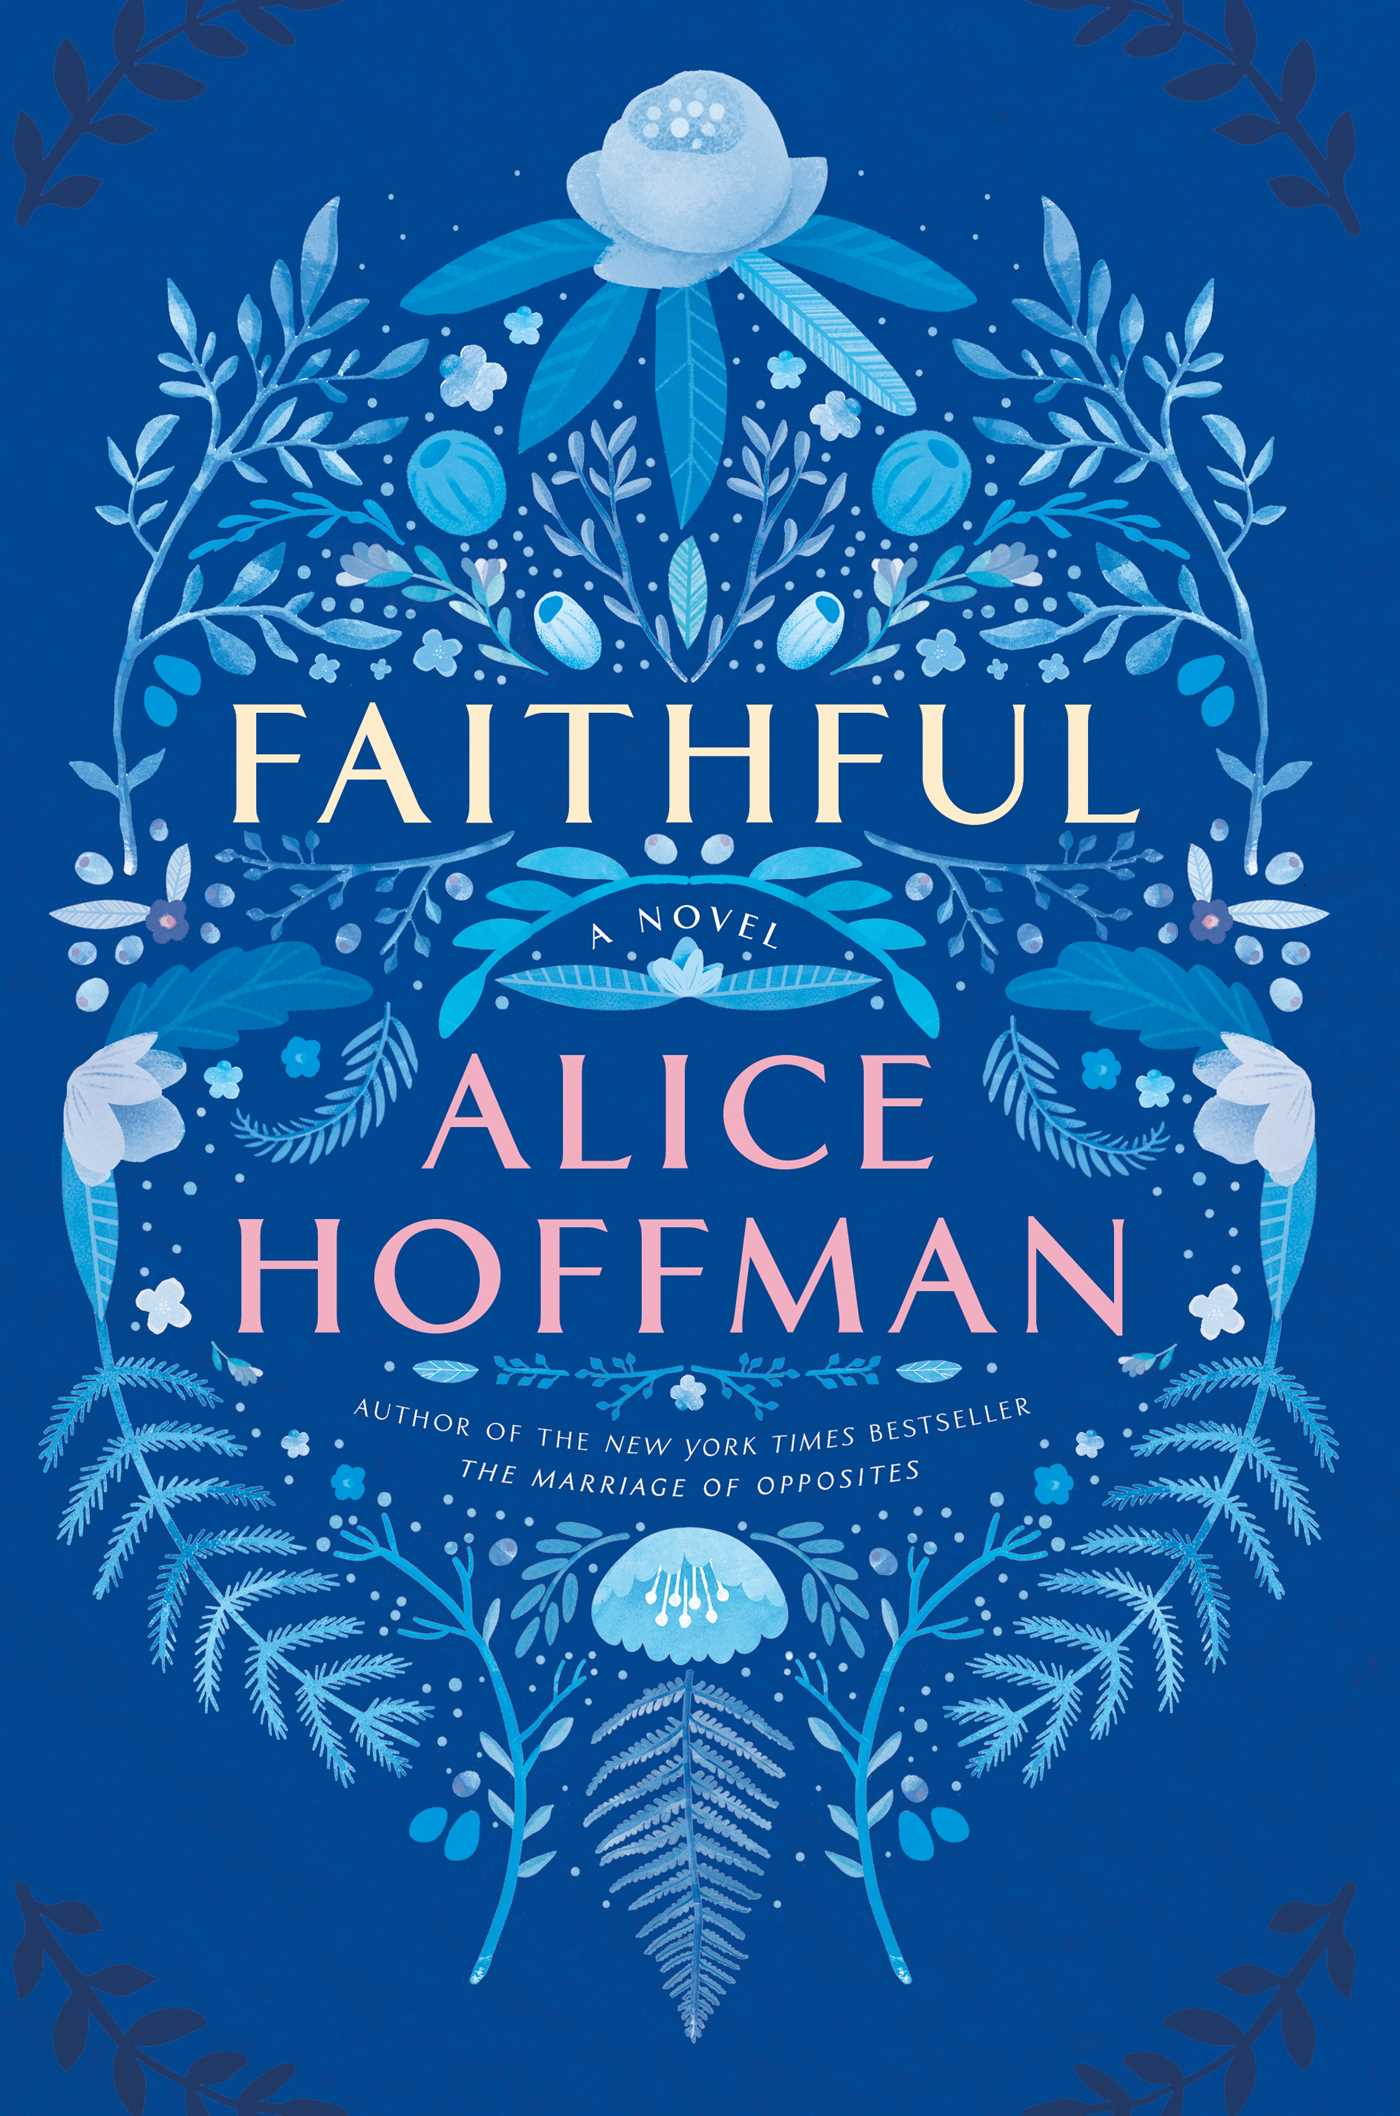 Image result for faithful book cover alice hoffman